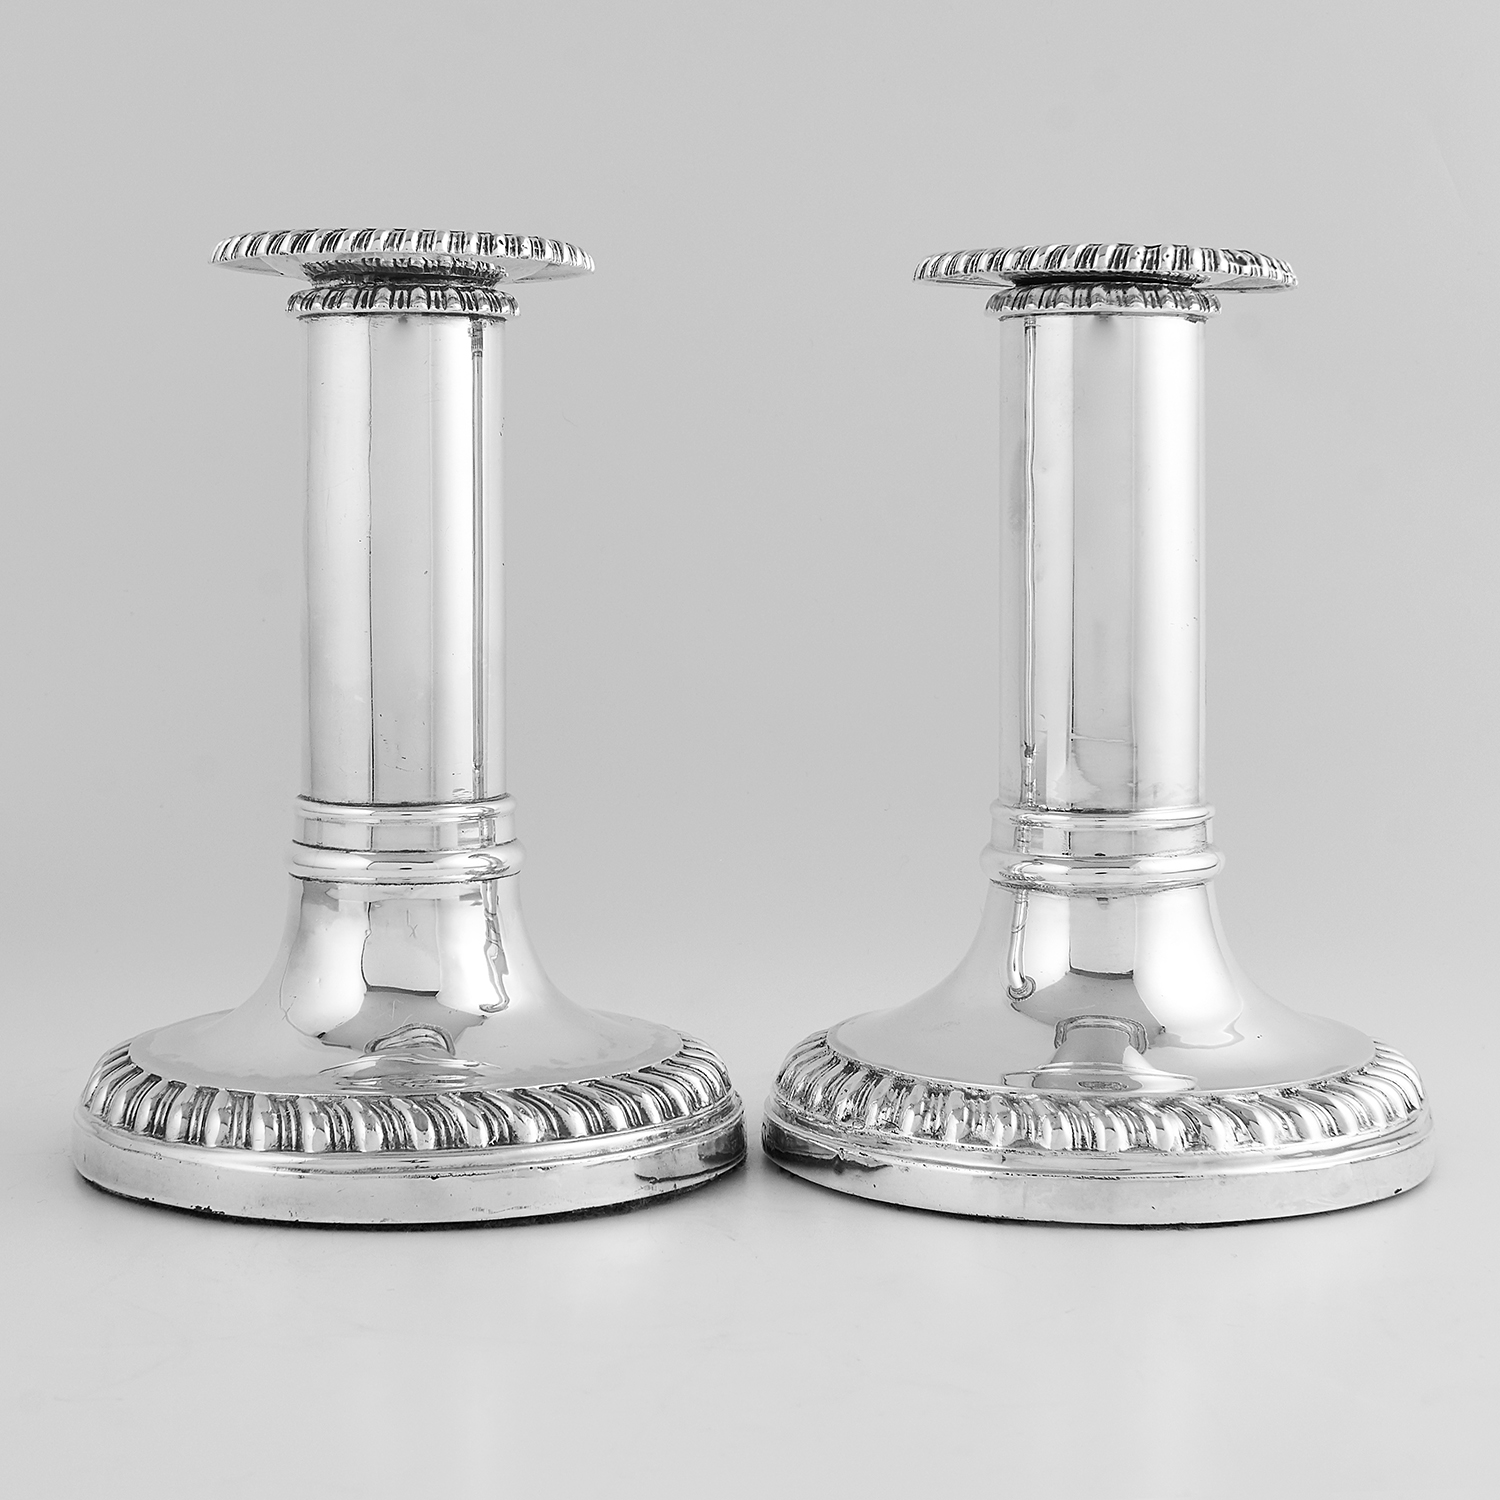 Los 64 - PAIR OF ANTIQUE GEORGE III STERLING SILVER CANDLE STICKS, JOHN & THOMAS SETTLE, SHEFFIELD 1817 the